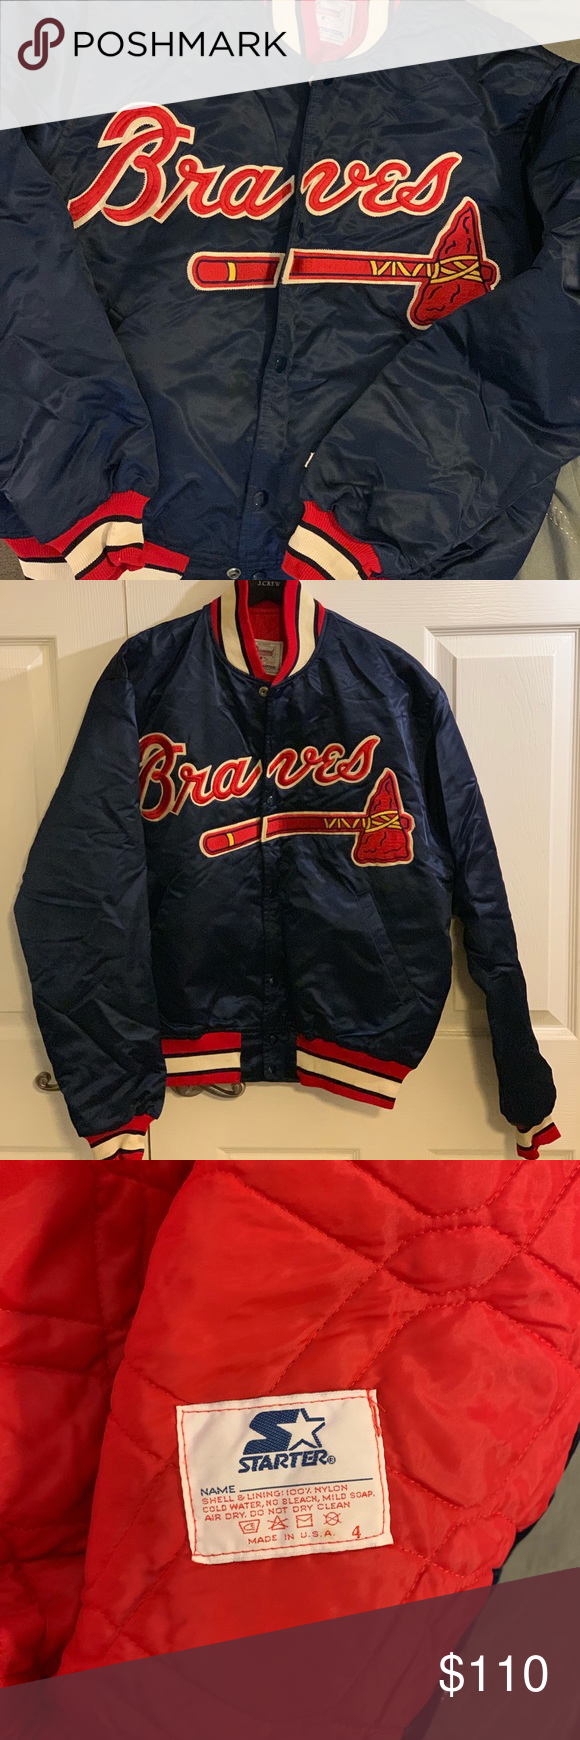 Atlanta Braves Starter Clubhouse Jacket Size Large Jackets Atlanta Braves Clothes Design